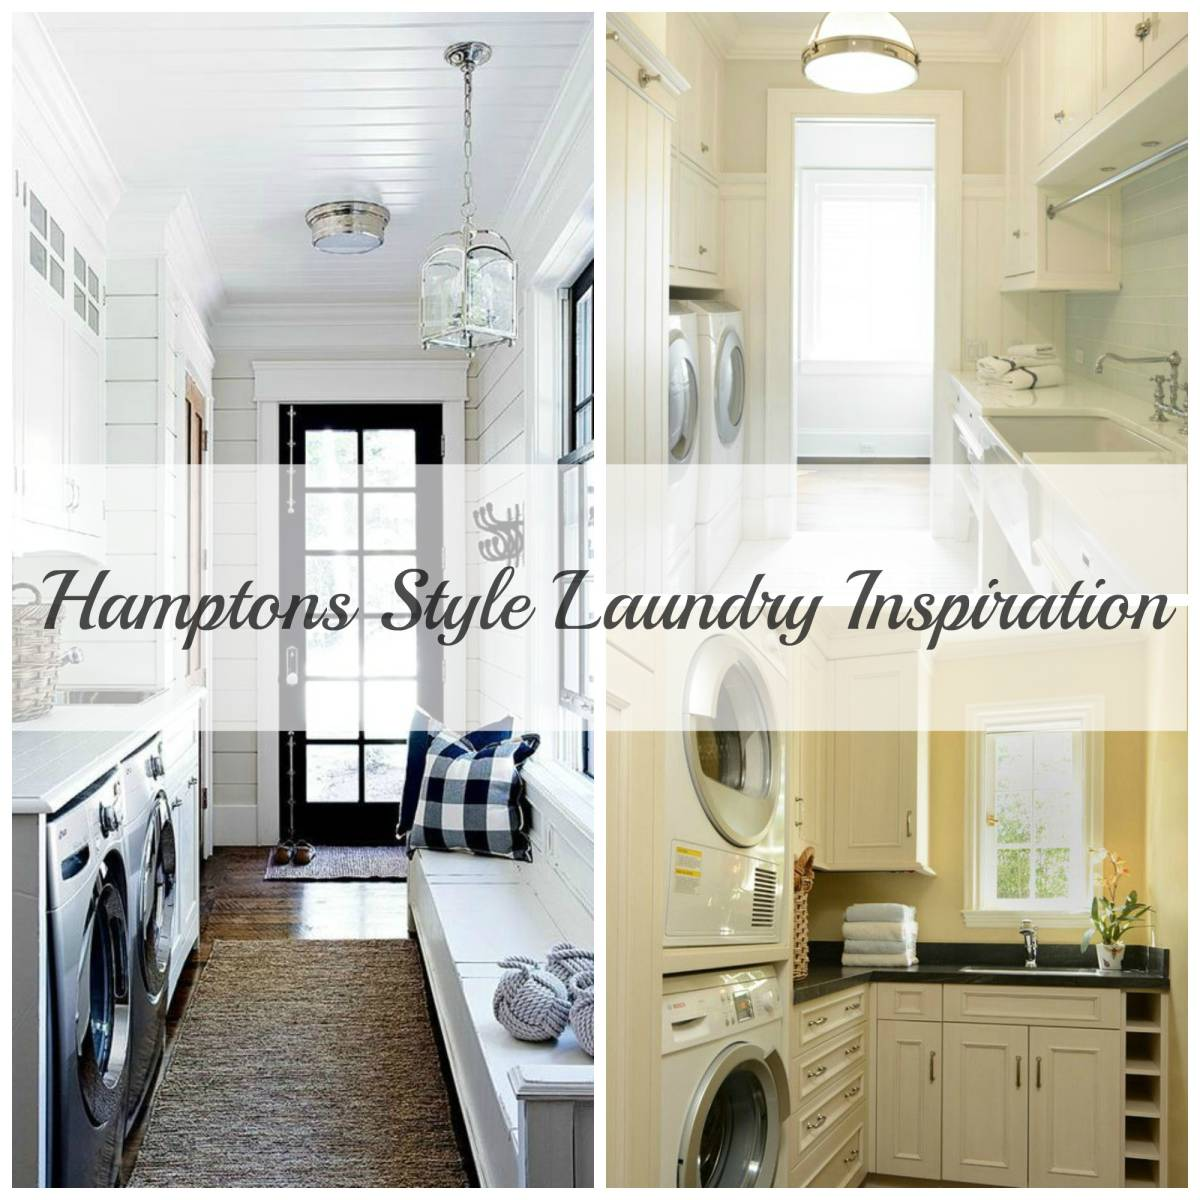 Hamptons style laundry inspired space the builder 39 s wife for Hampton style interior decorating ideas